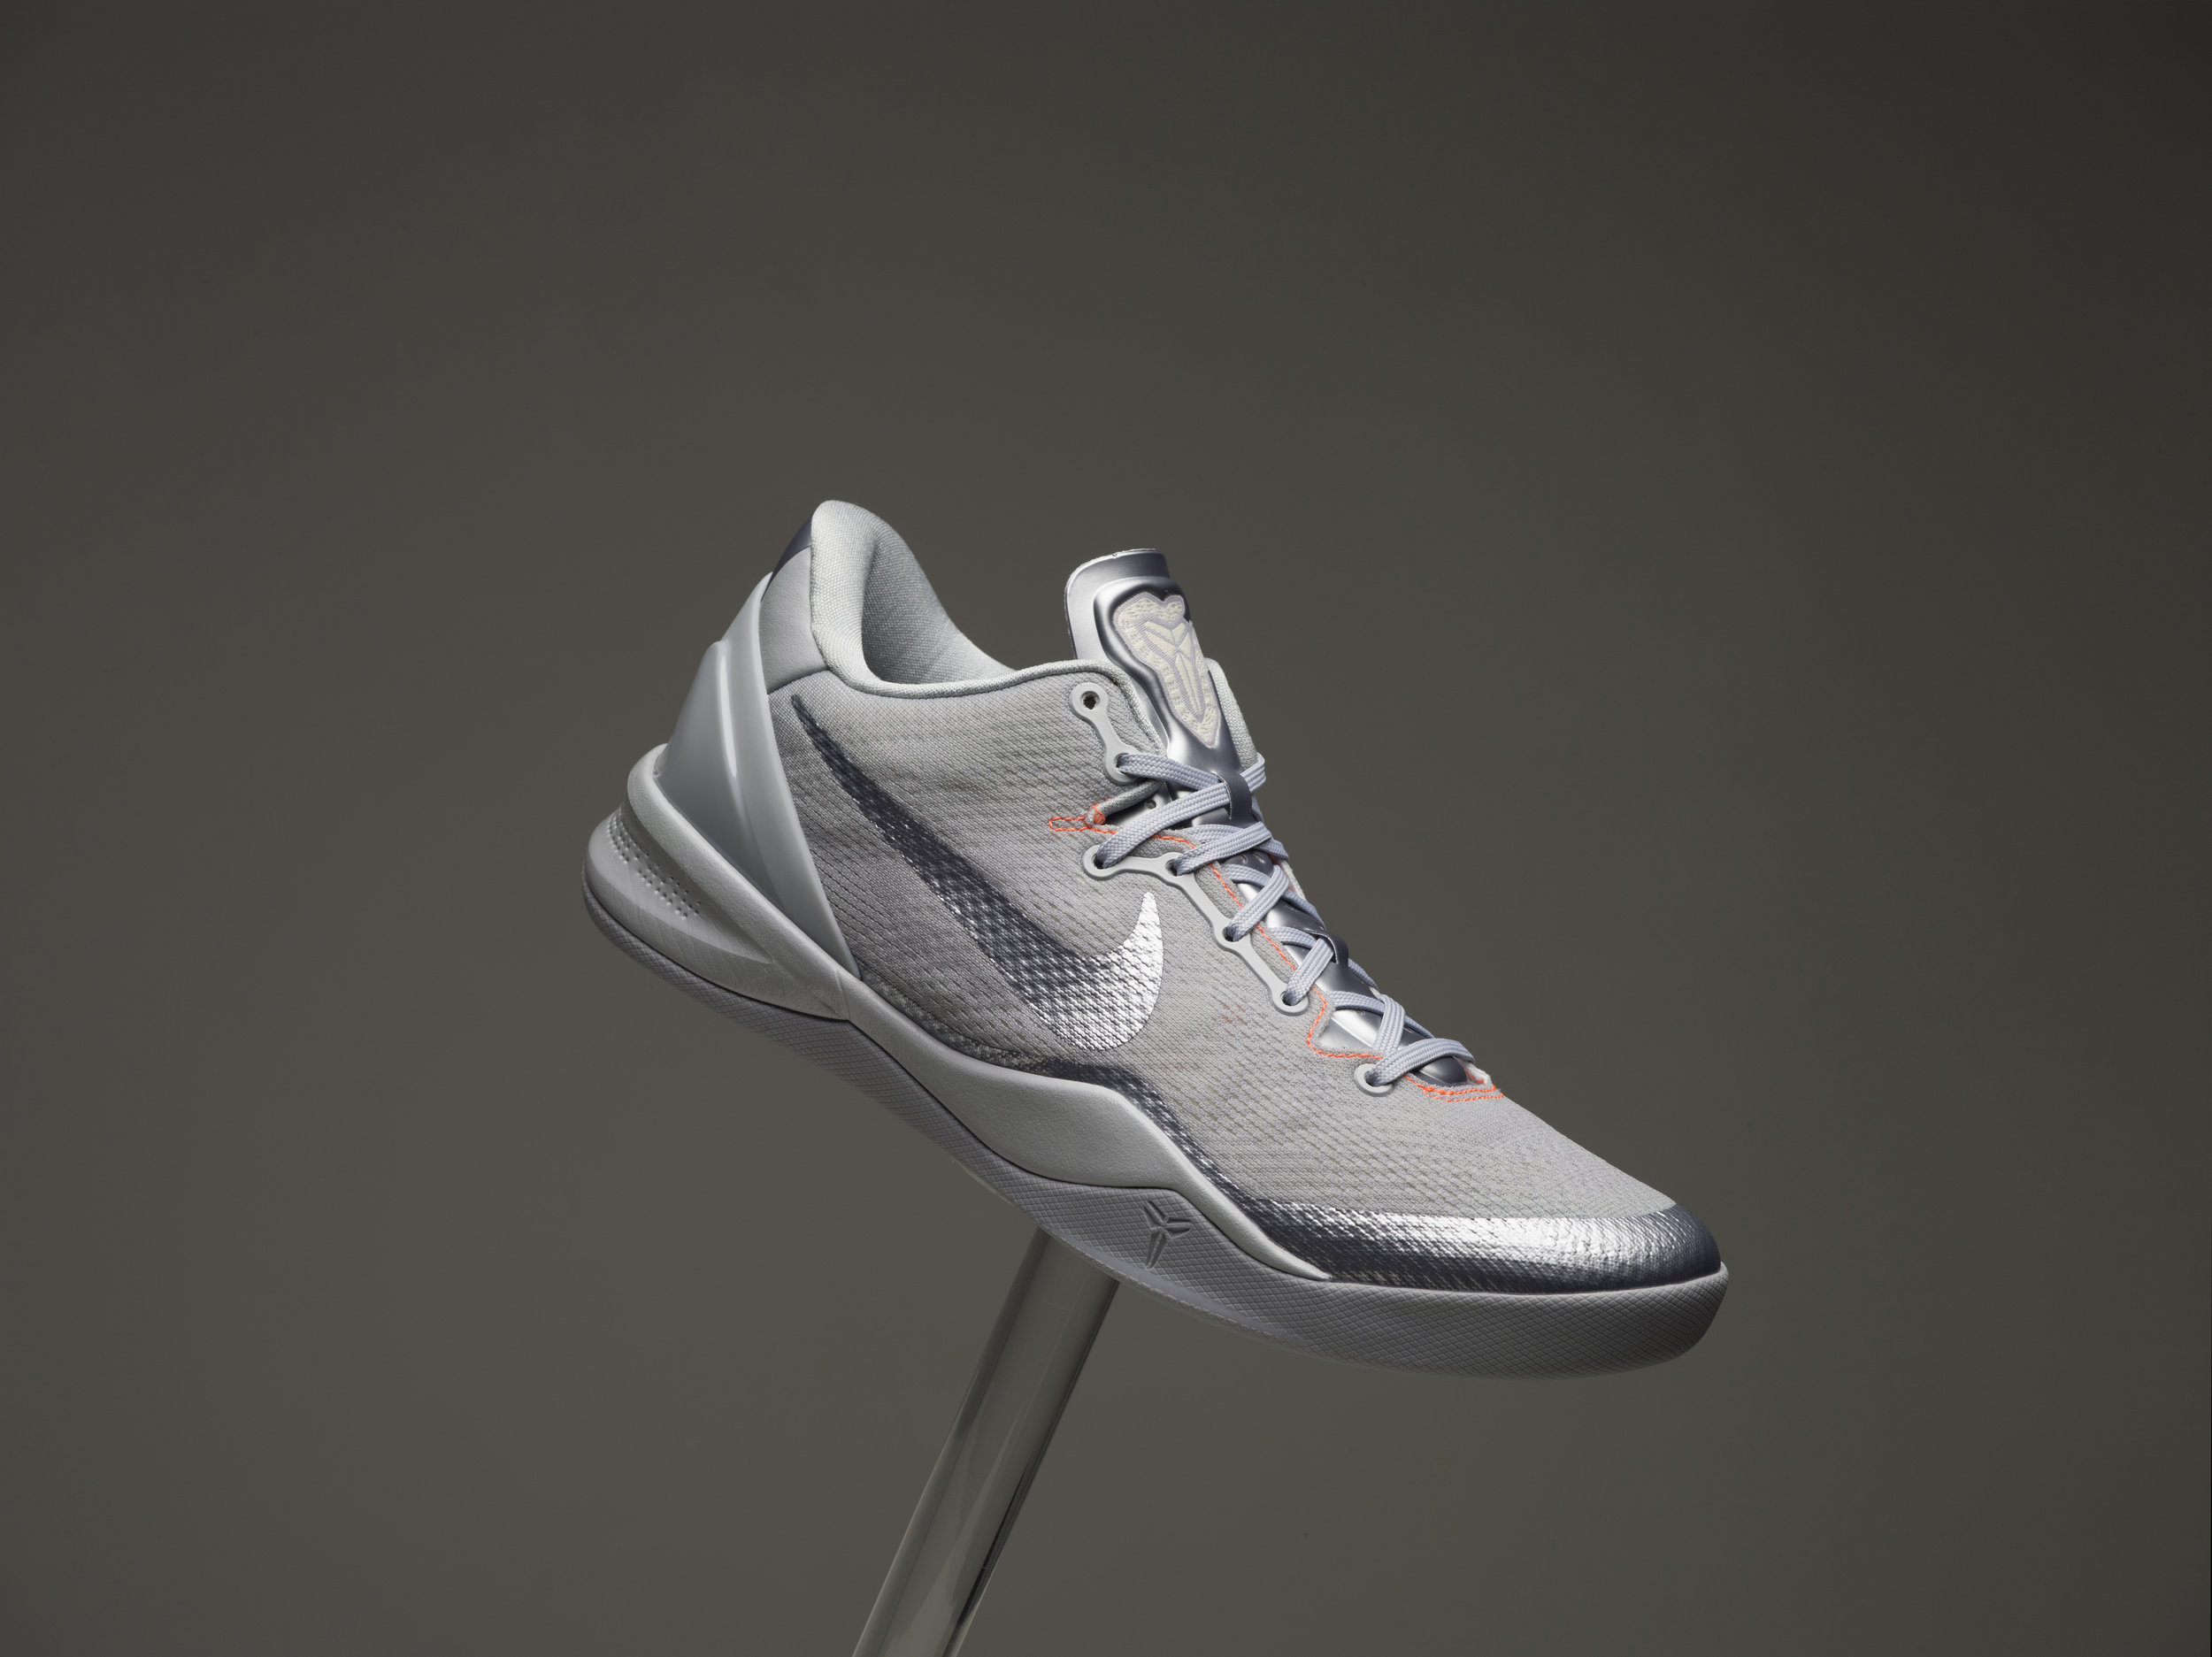 KOBEVIII_MEN_SINGLE_ORIG_2500w.jpg